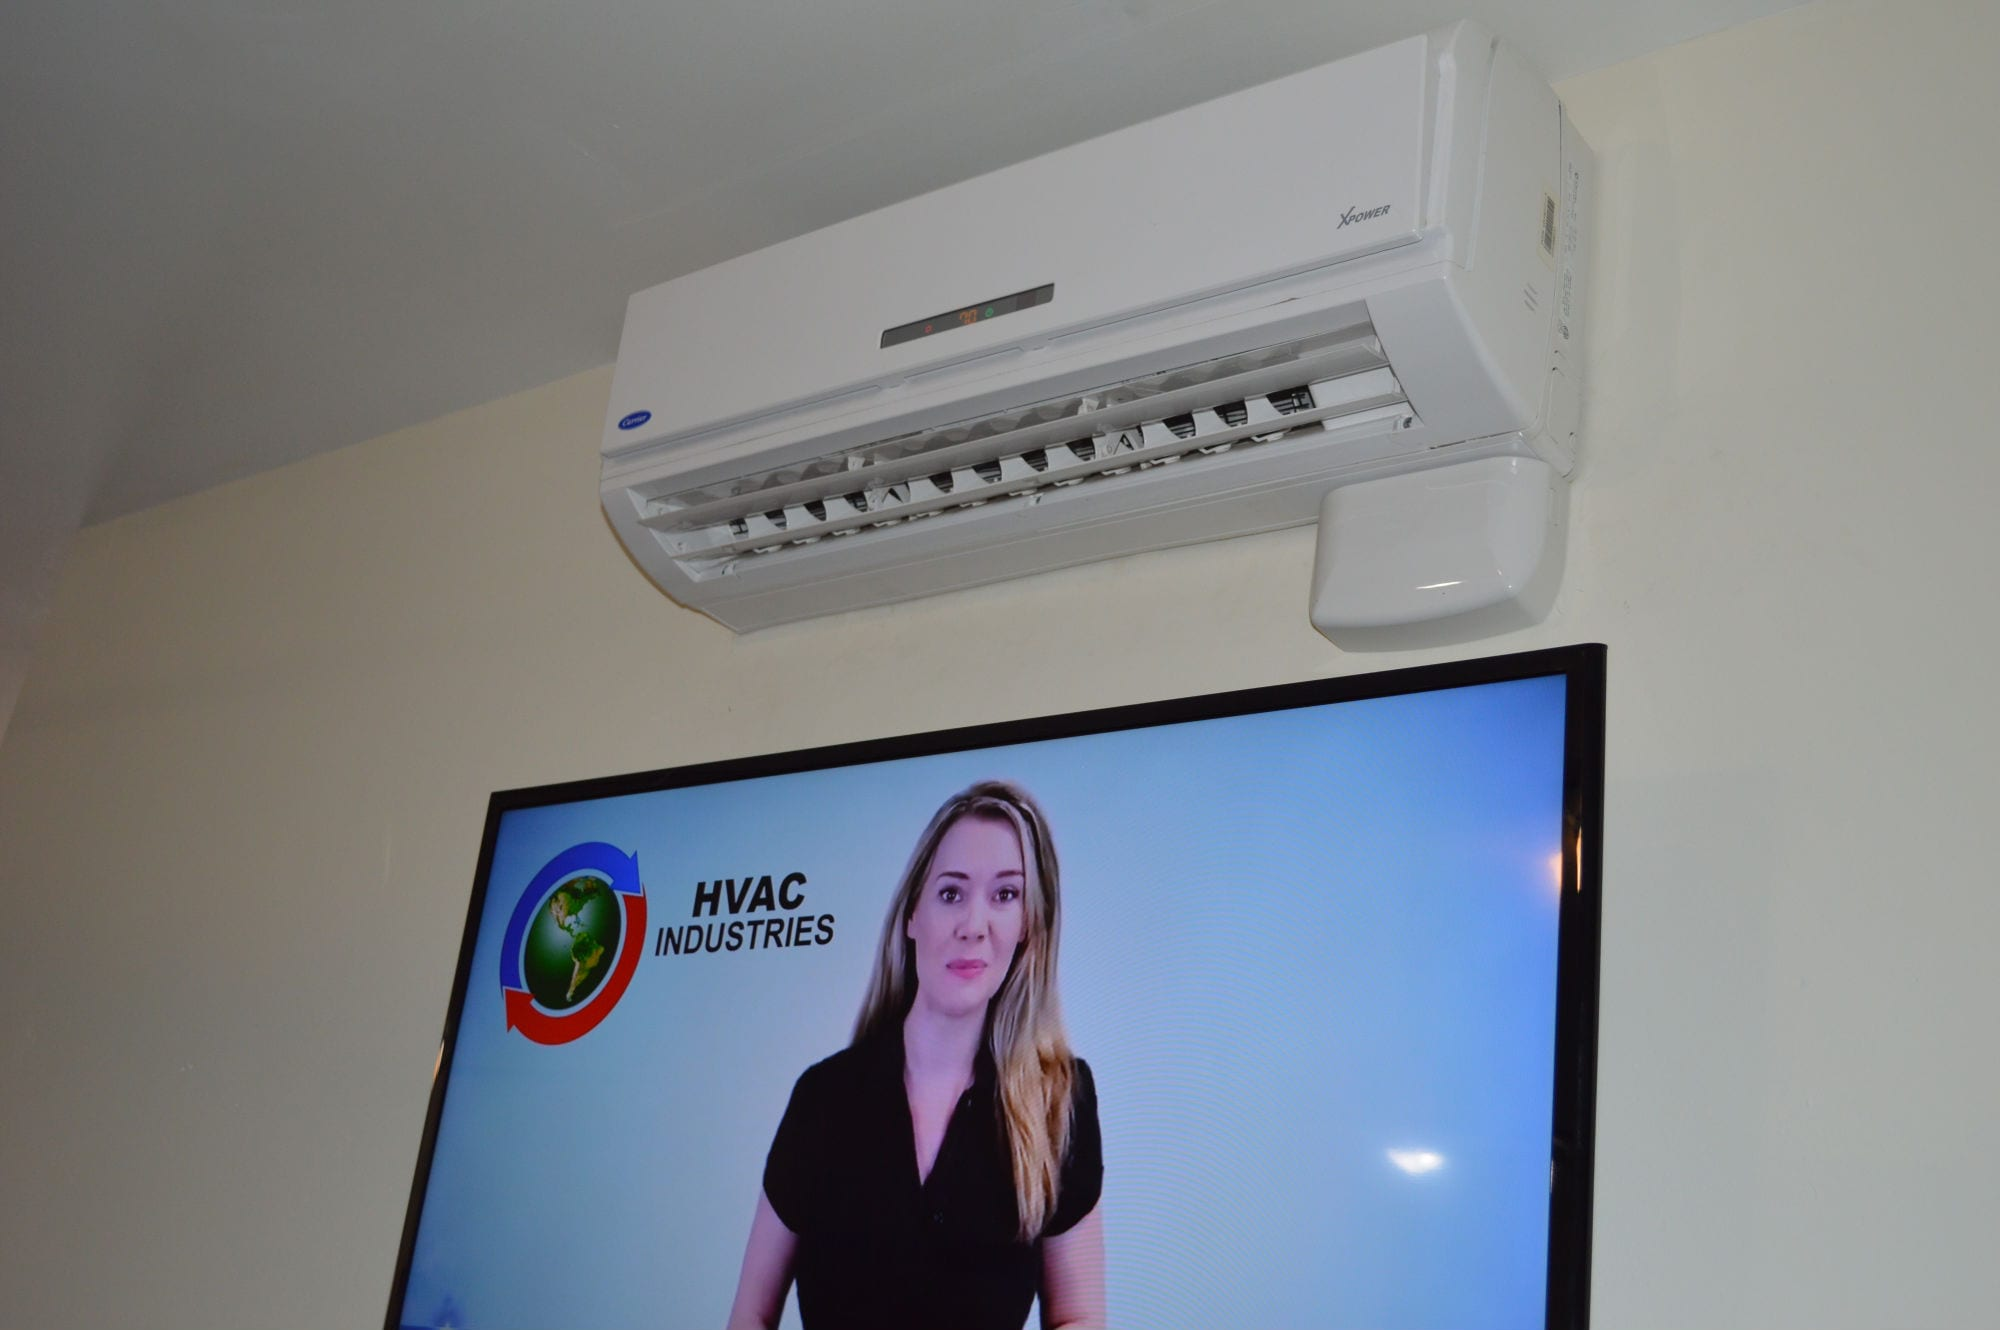 Hvac Industries About Us Office